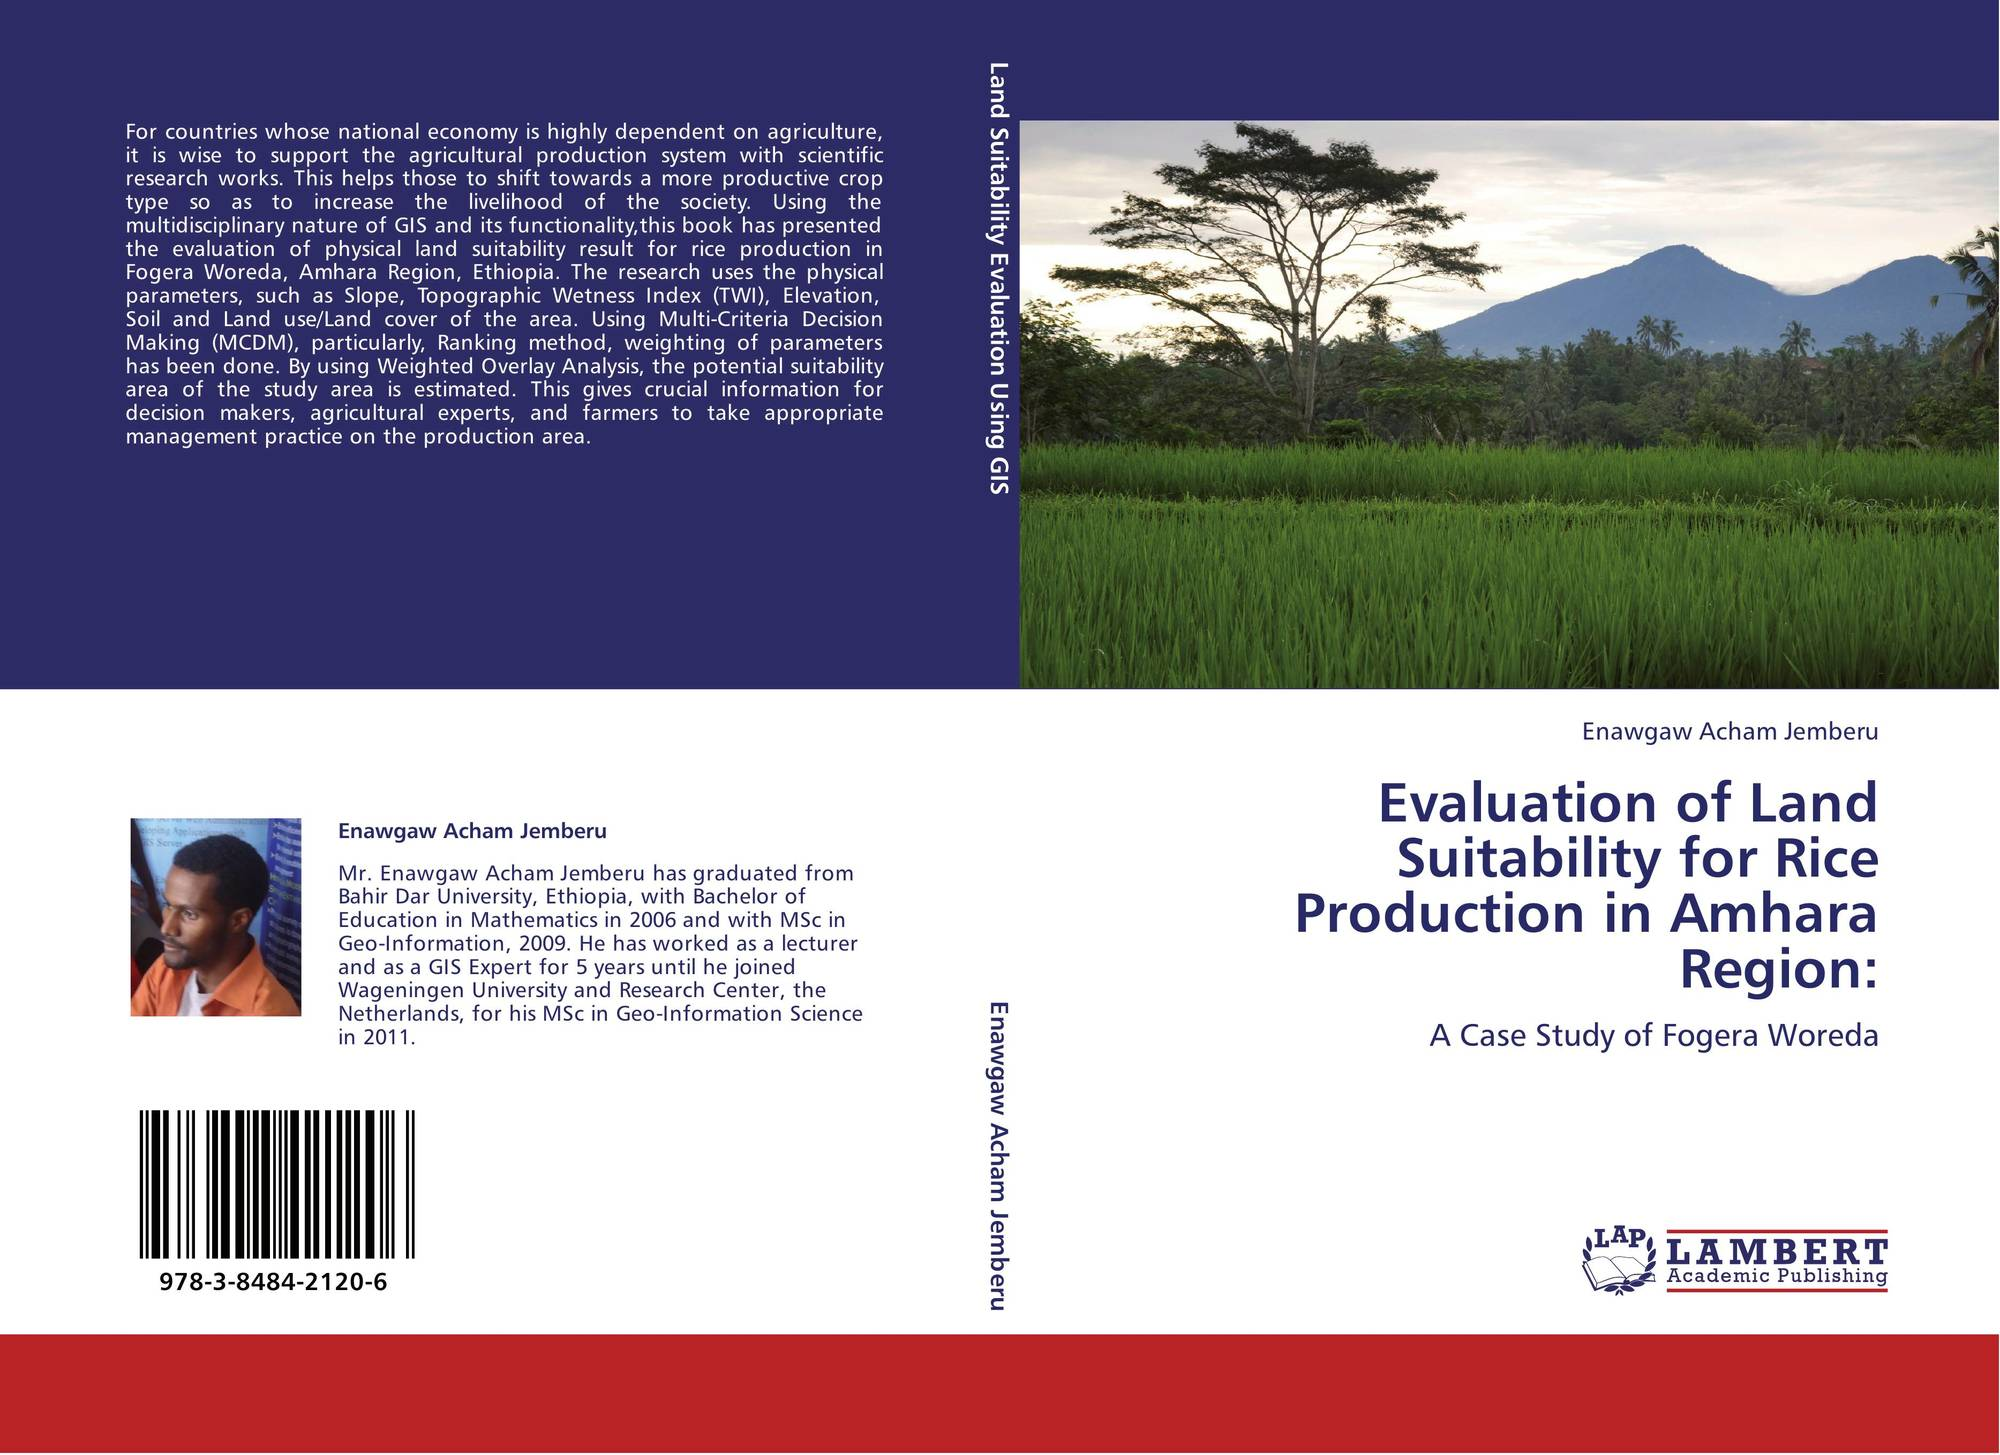 a case study of ethiopias land and economy State of knowledge on csa in africa: case studies from ethiopia, kenya and  uganda a state of  department of agricultural economics & rural  development school of  overcoming the barriers of high opportunity costs to  land 37.